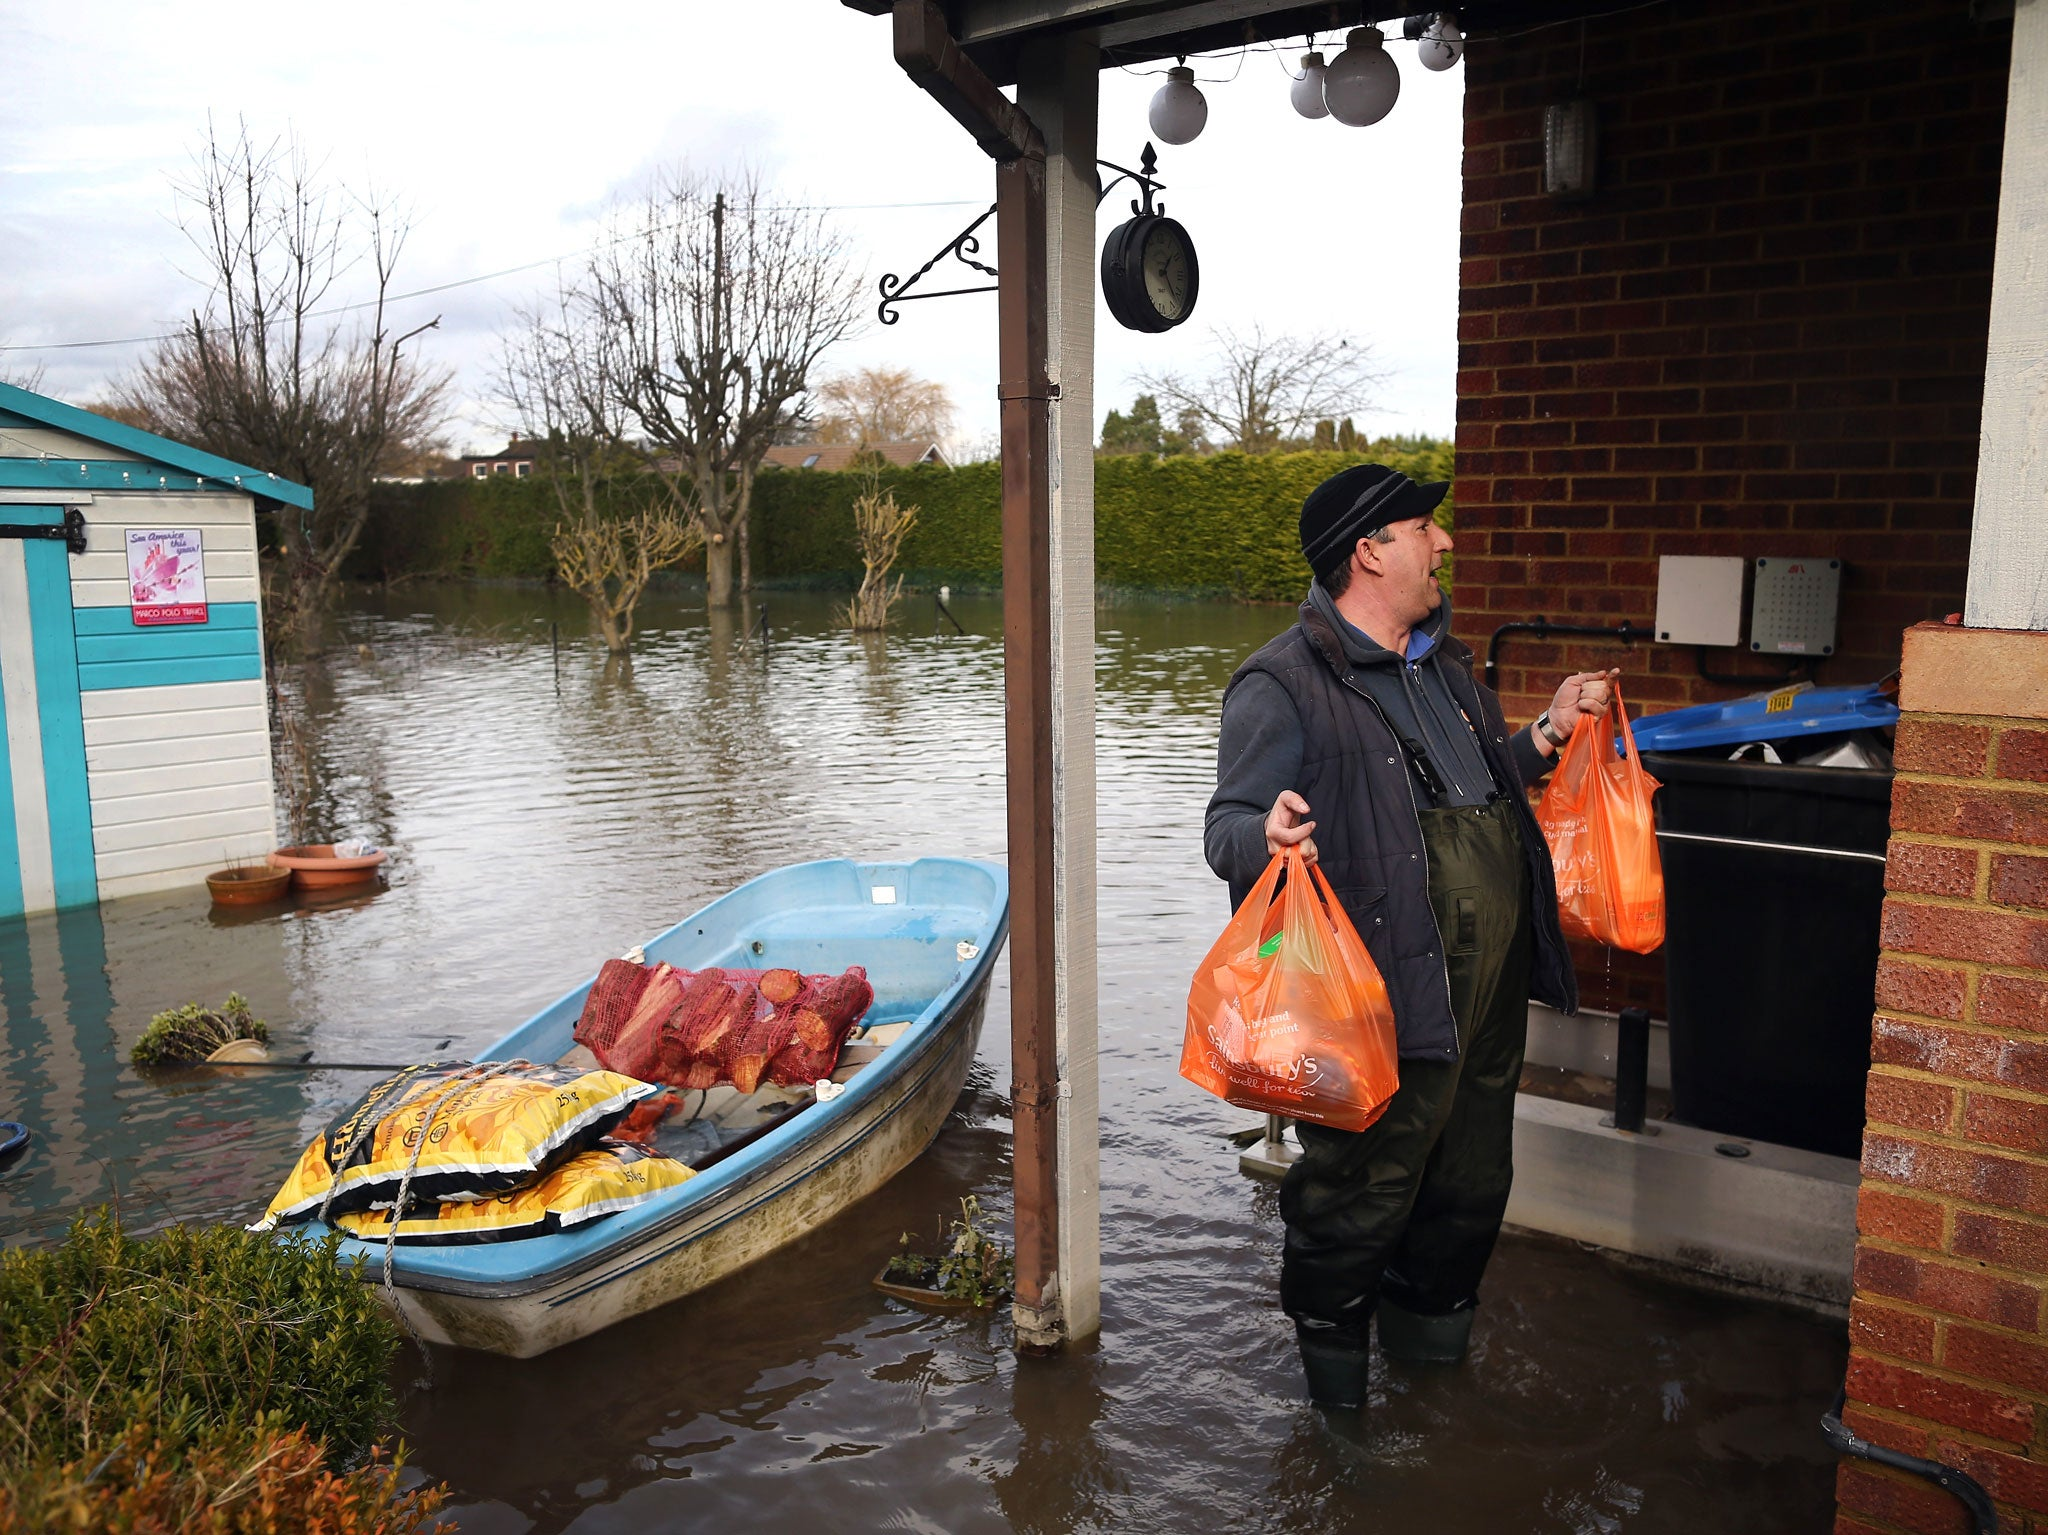 Why do we insist on building on flood plains? | The Independent